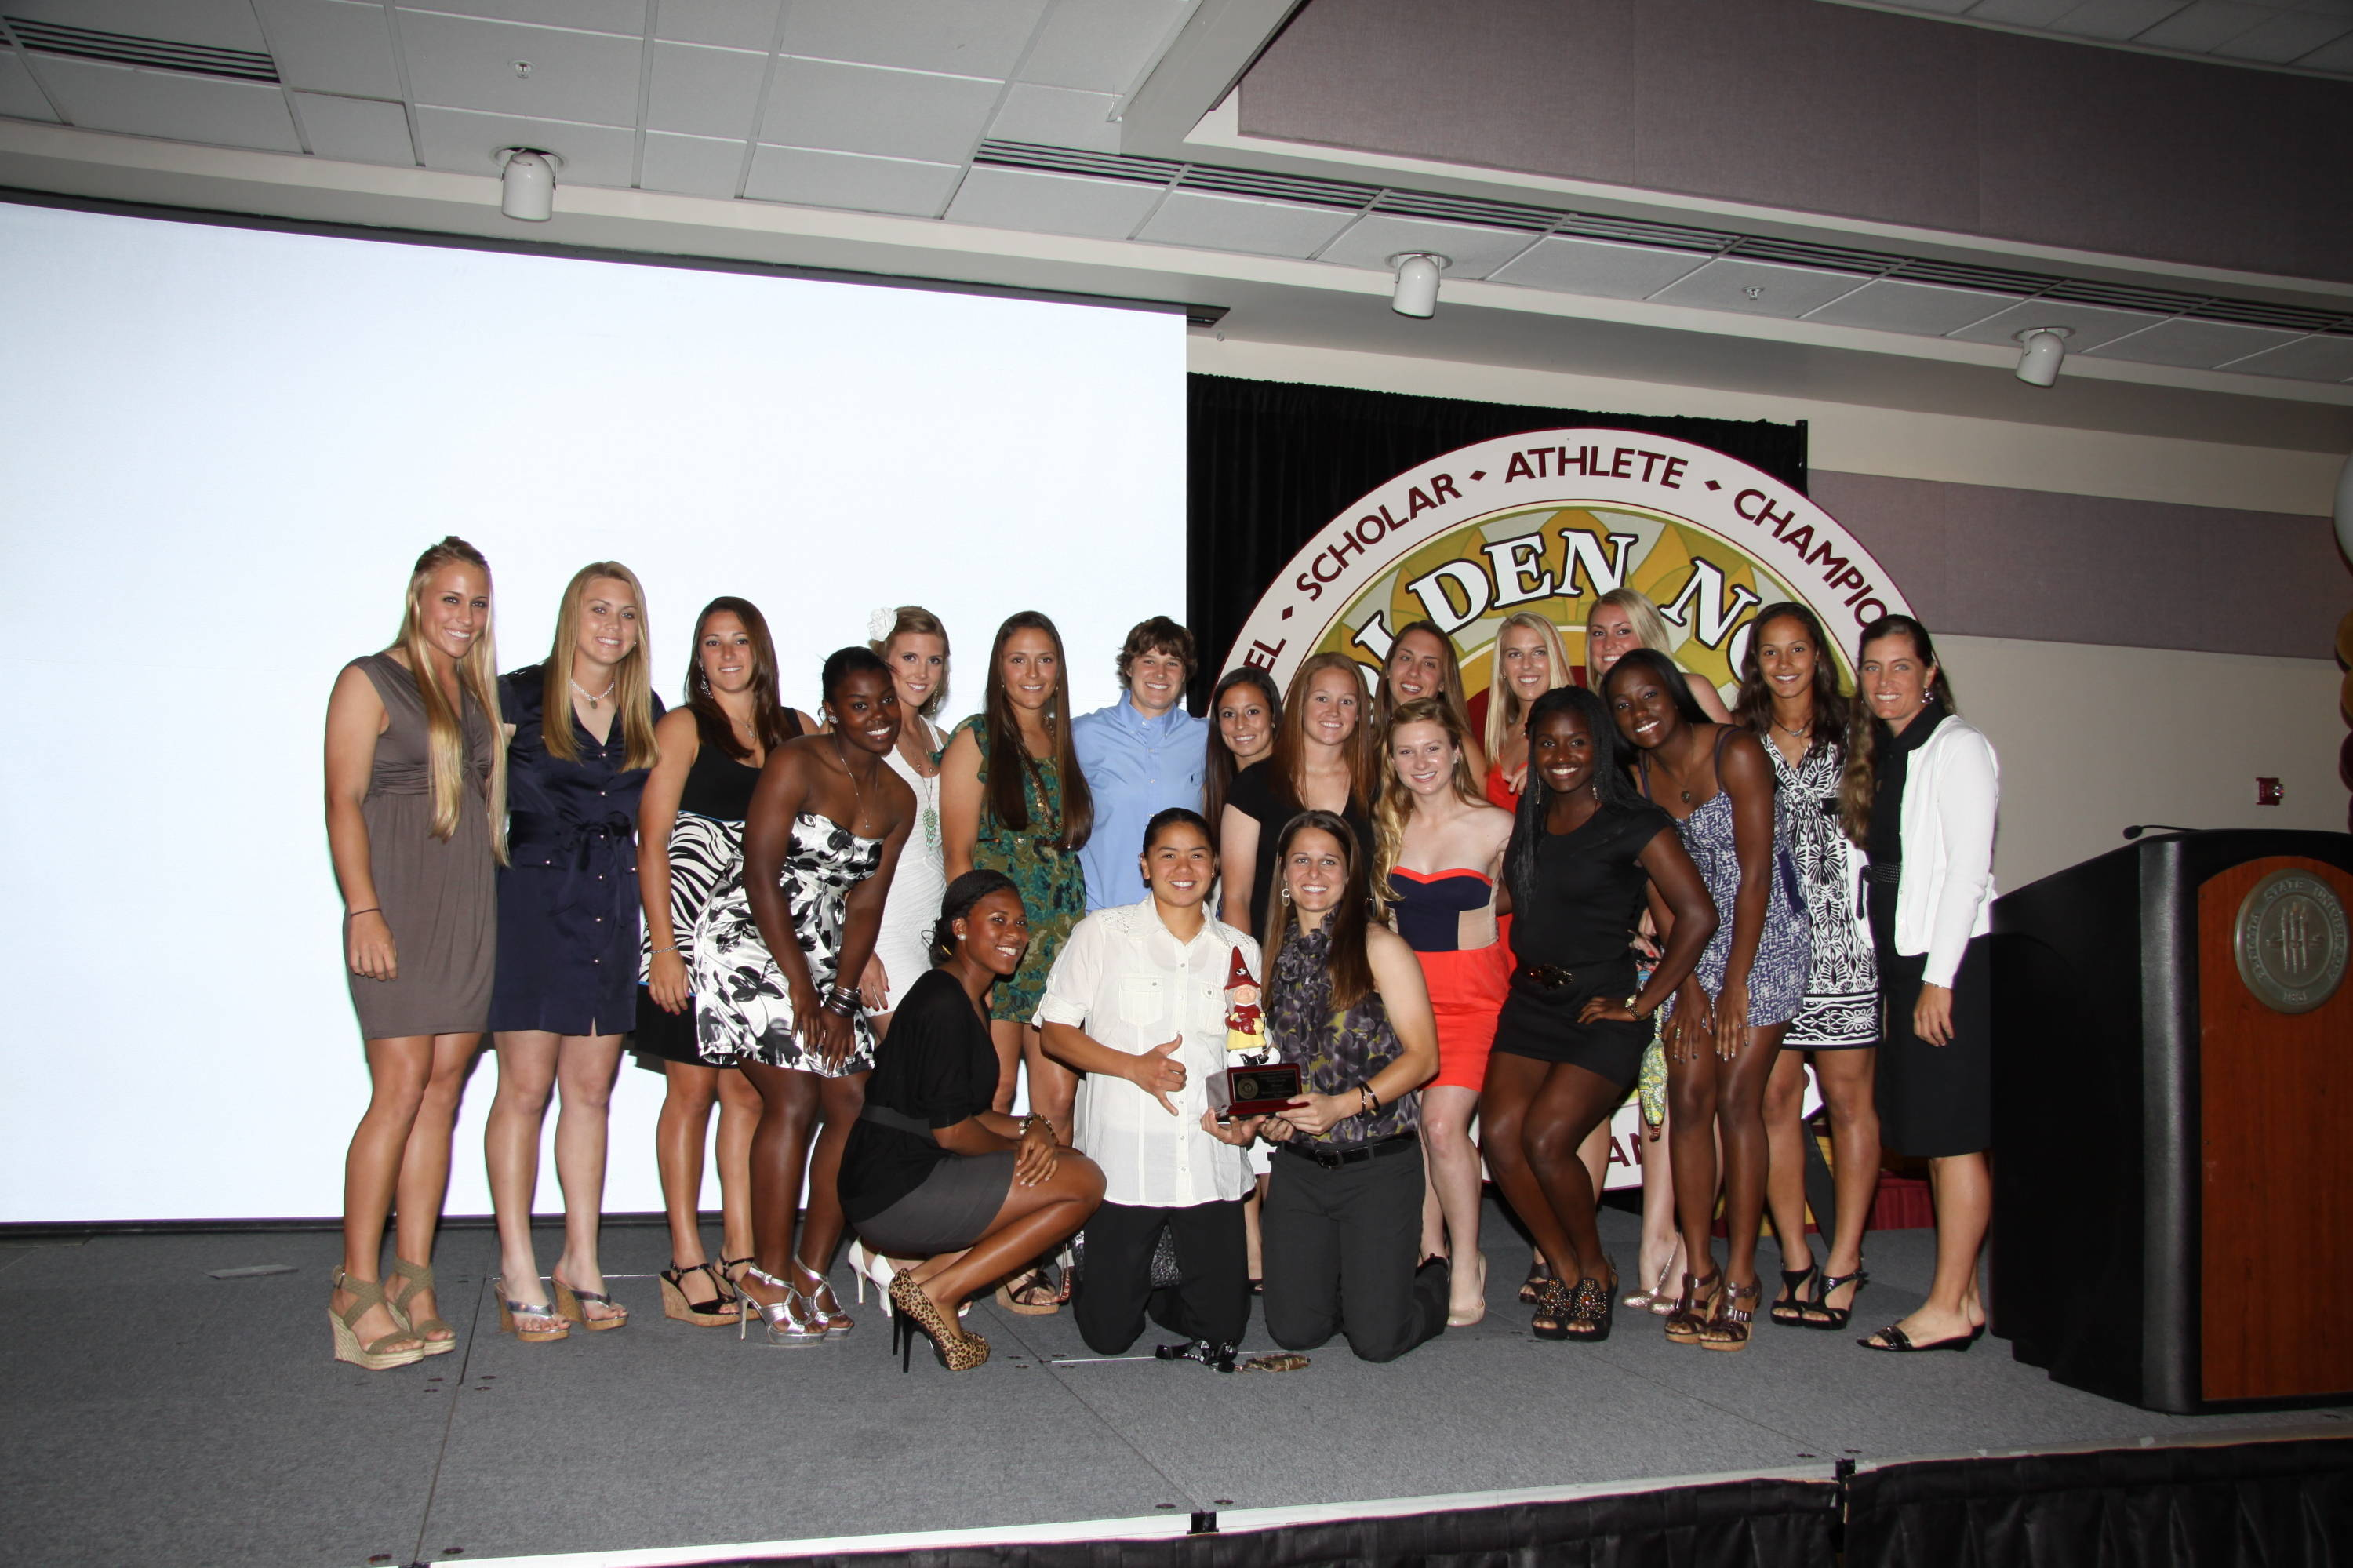 The 2011 softball team poses with its SemiGnome Award. Courtney Senas, who is kneeling in the middle next to the award, appears to be giving a shout-out to her native Hawaiians.